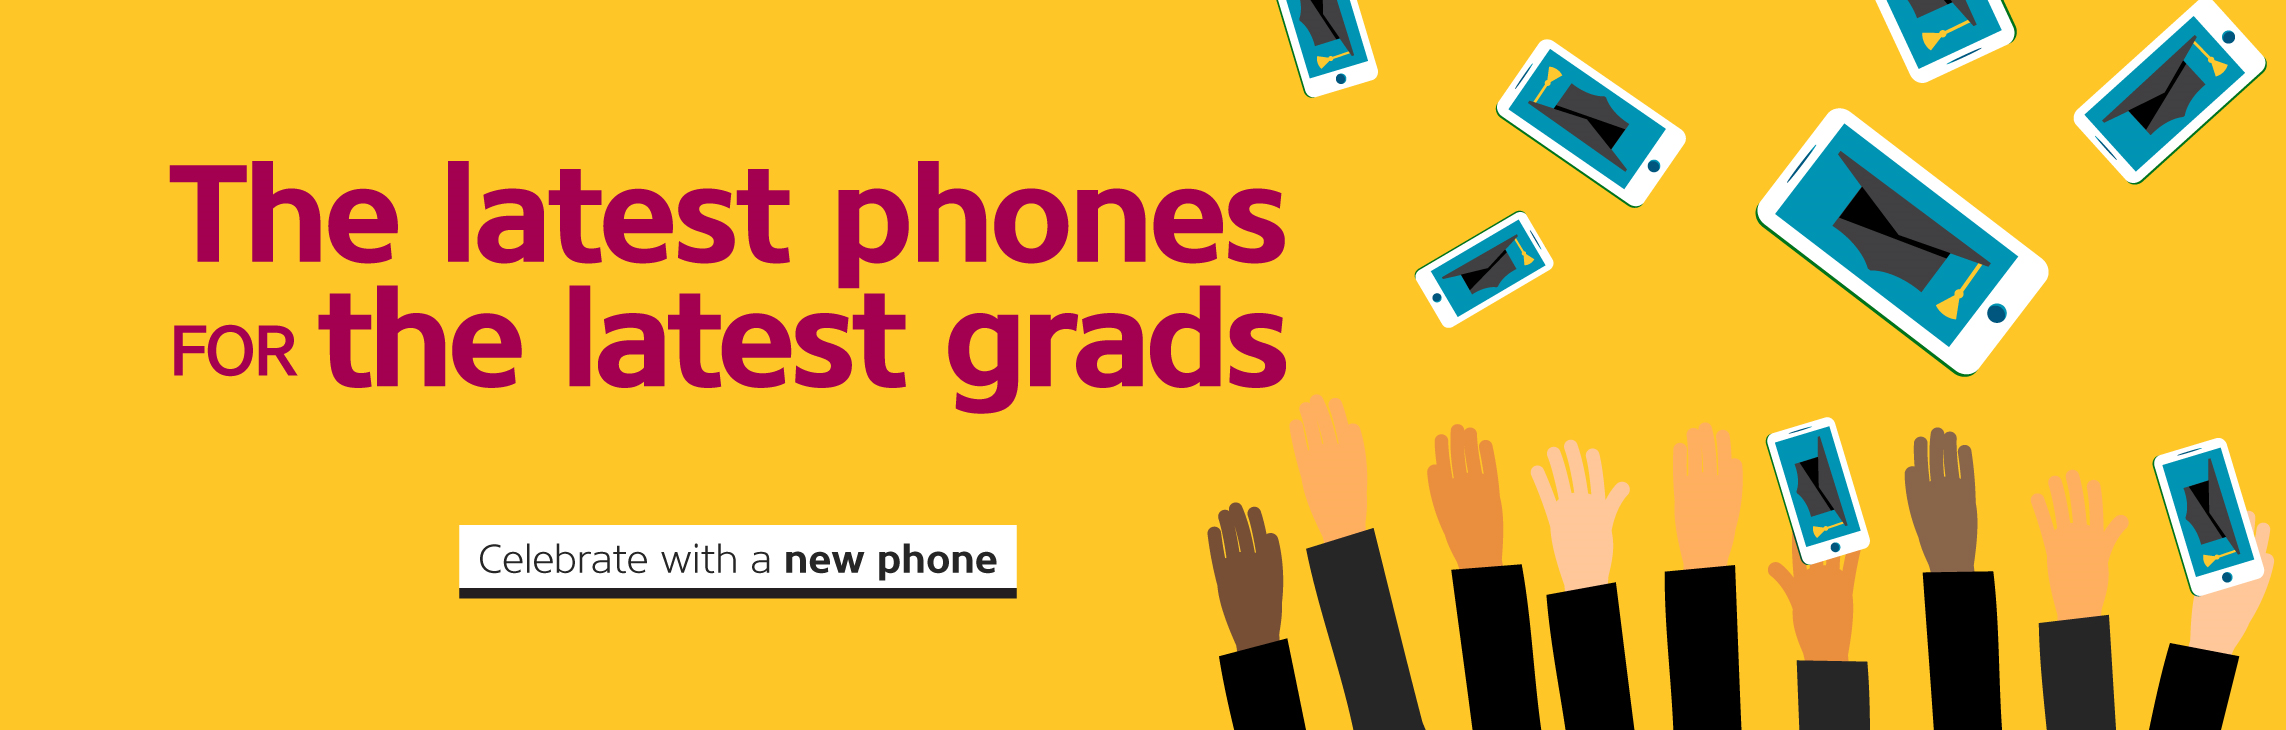 The latest phones for the latest grads